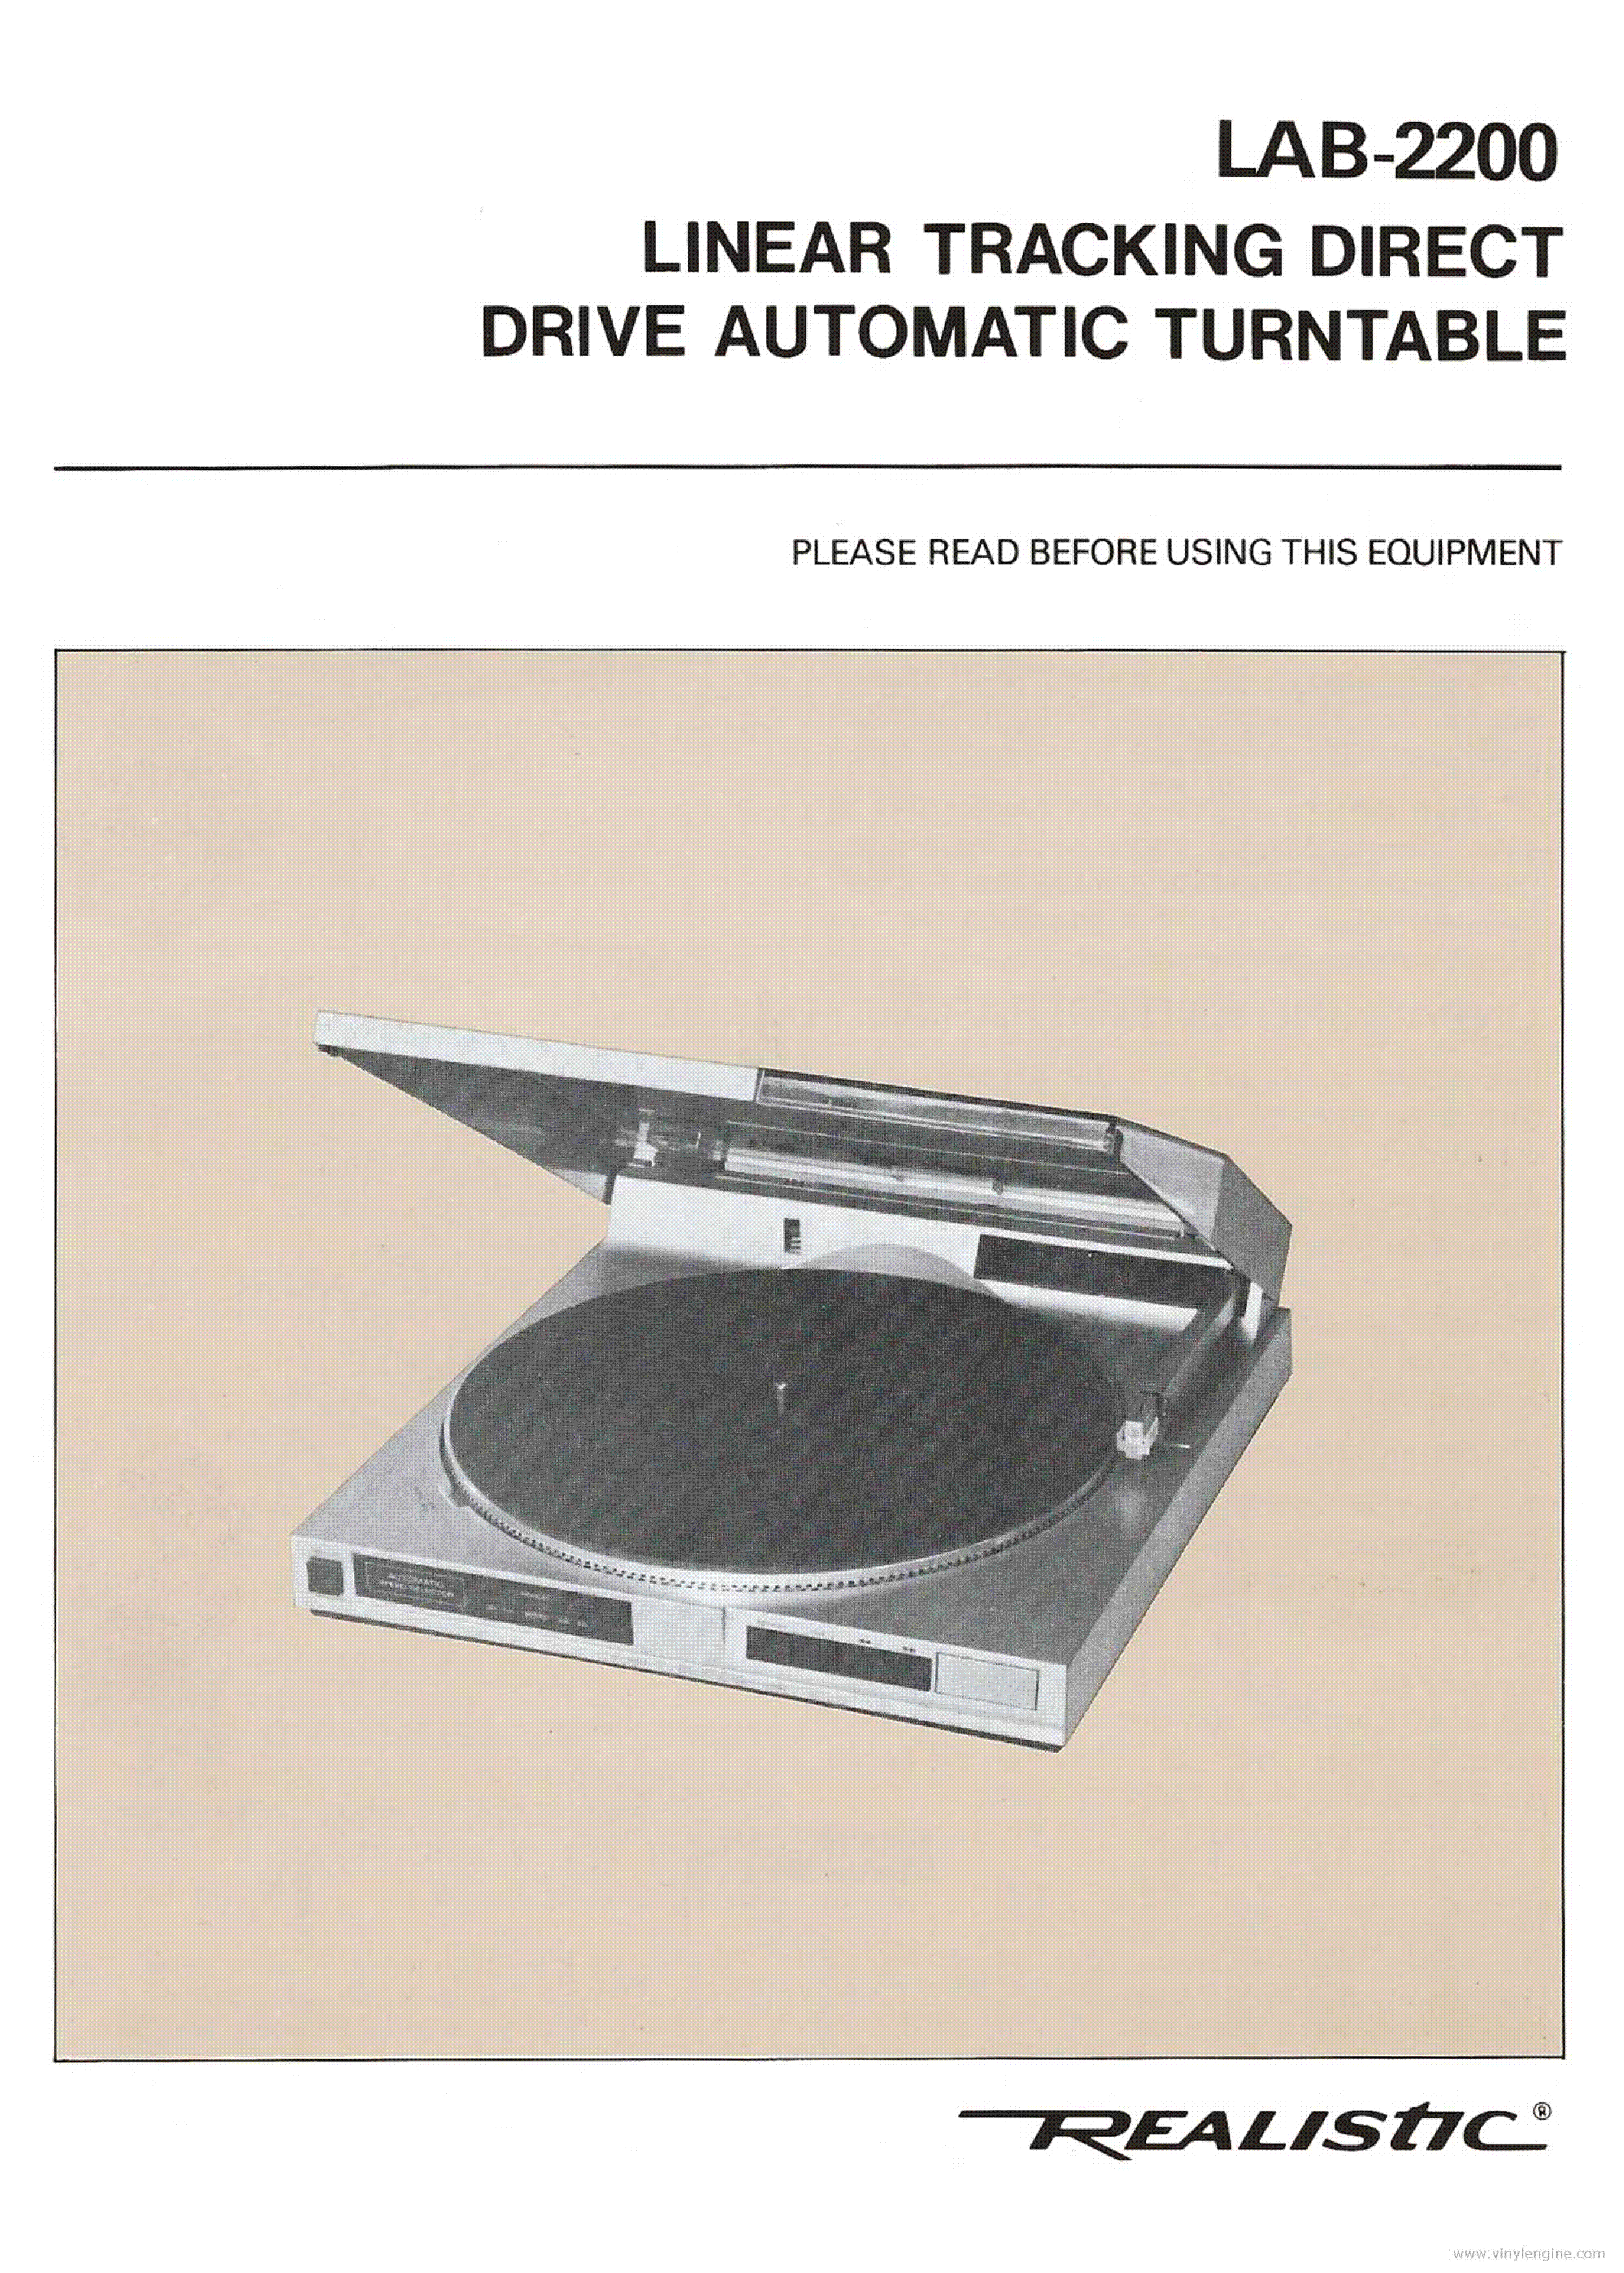 manual for realistic lab 440 turntable